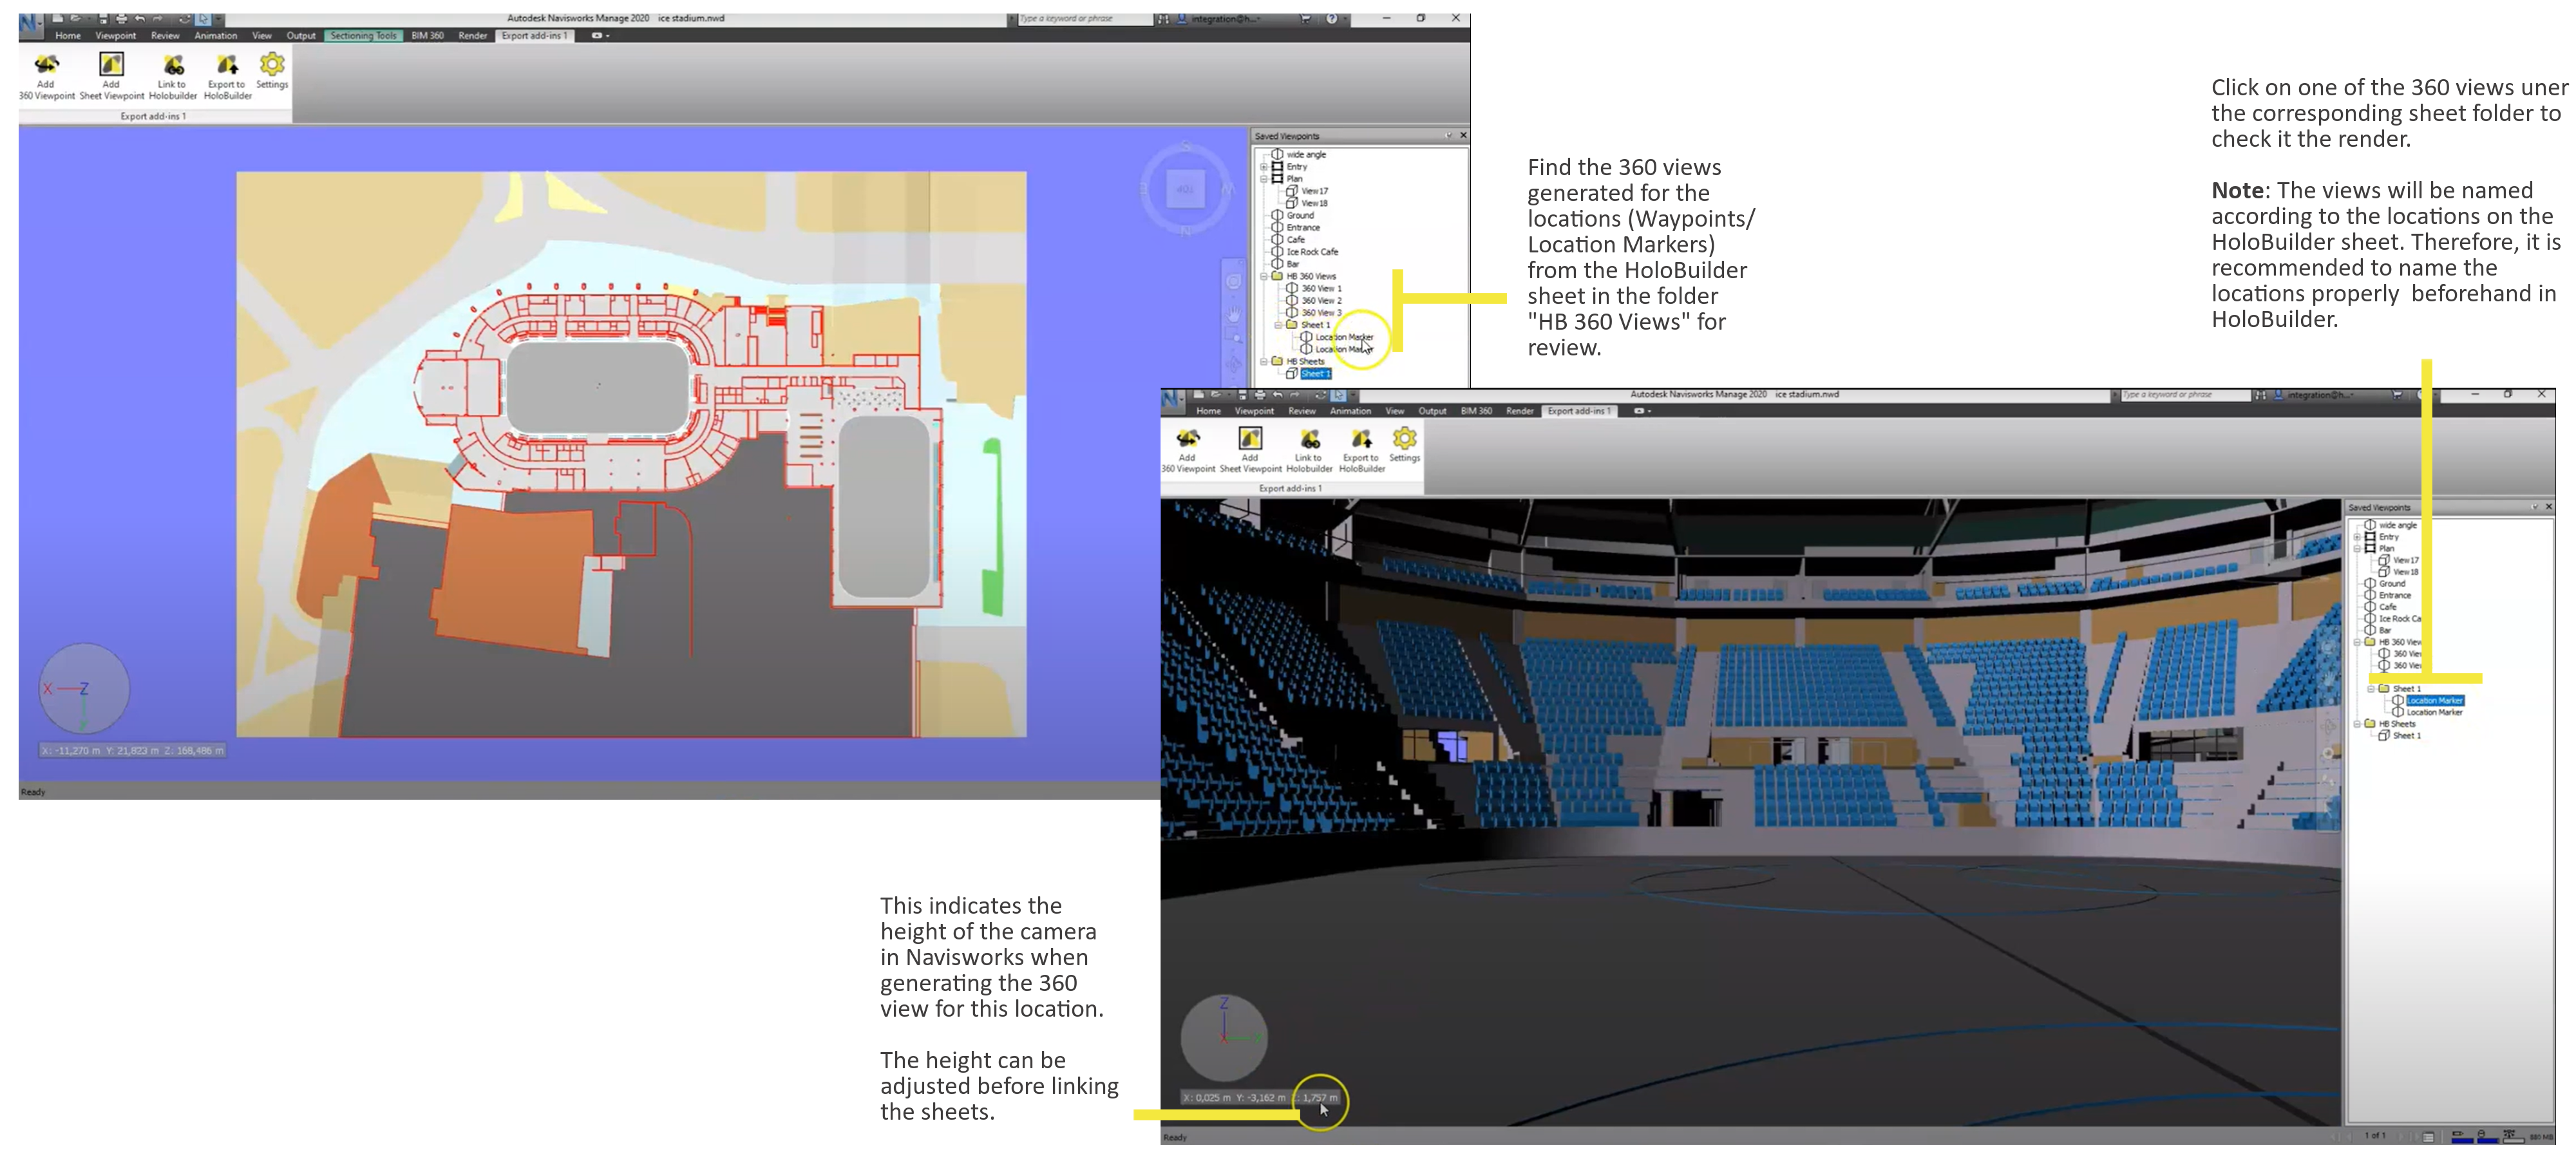 Check the 360 views generated for the locations pulled from the linked HoloBuilder sheet